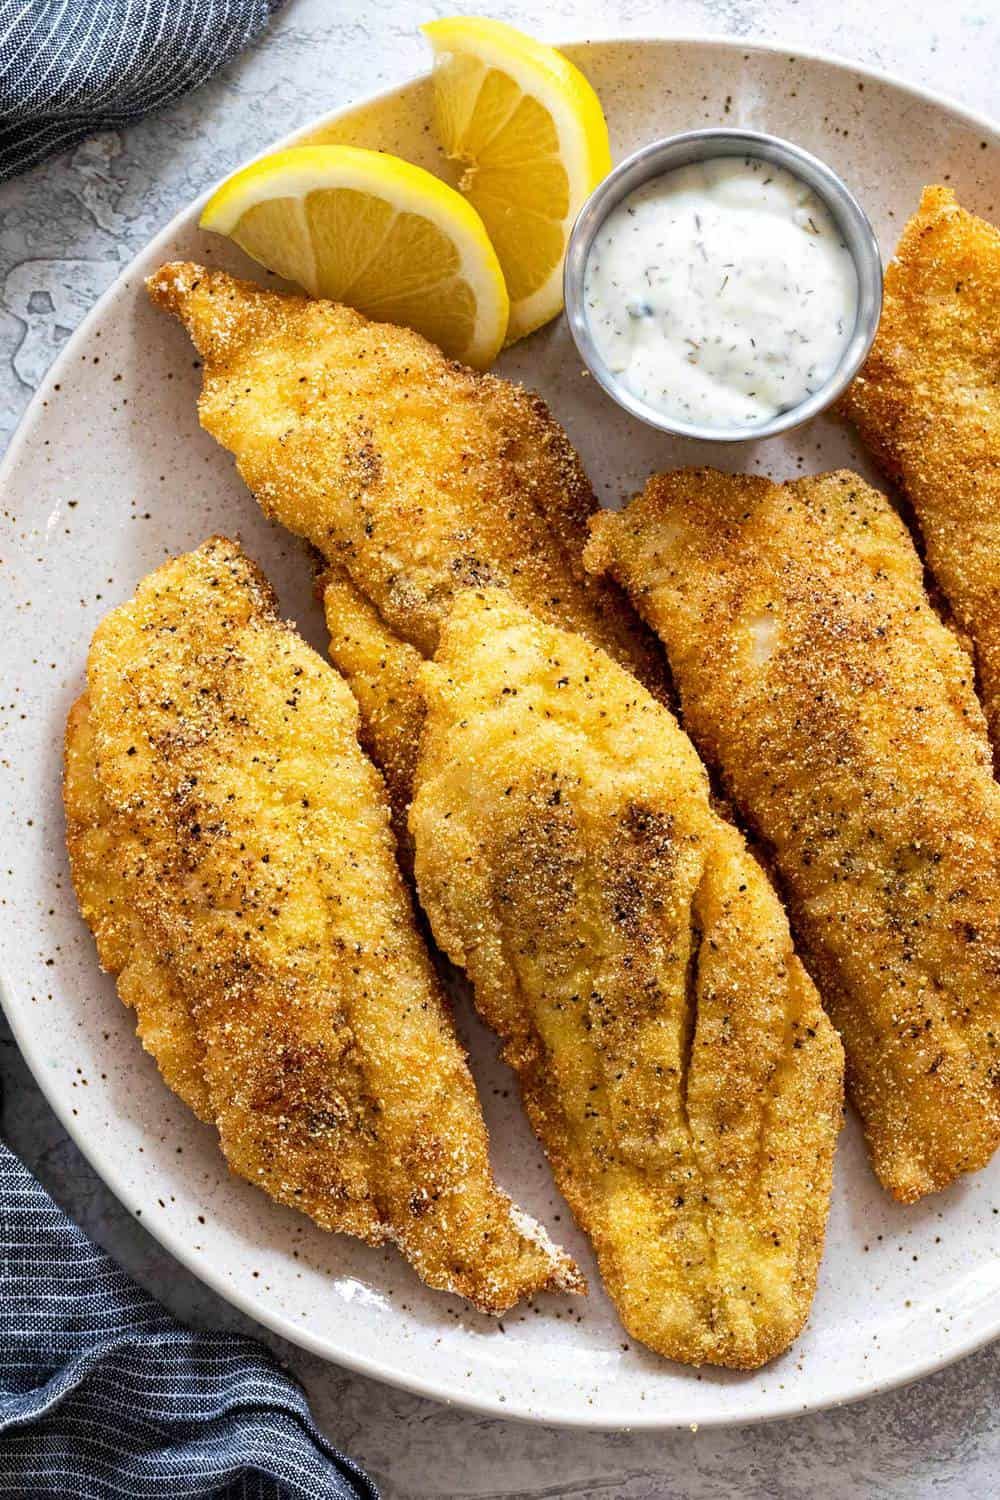 Fried Catfish on a white plate with two lemon slices.